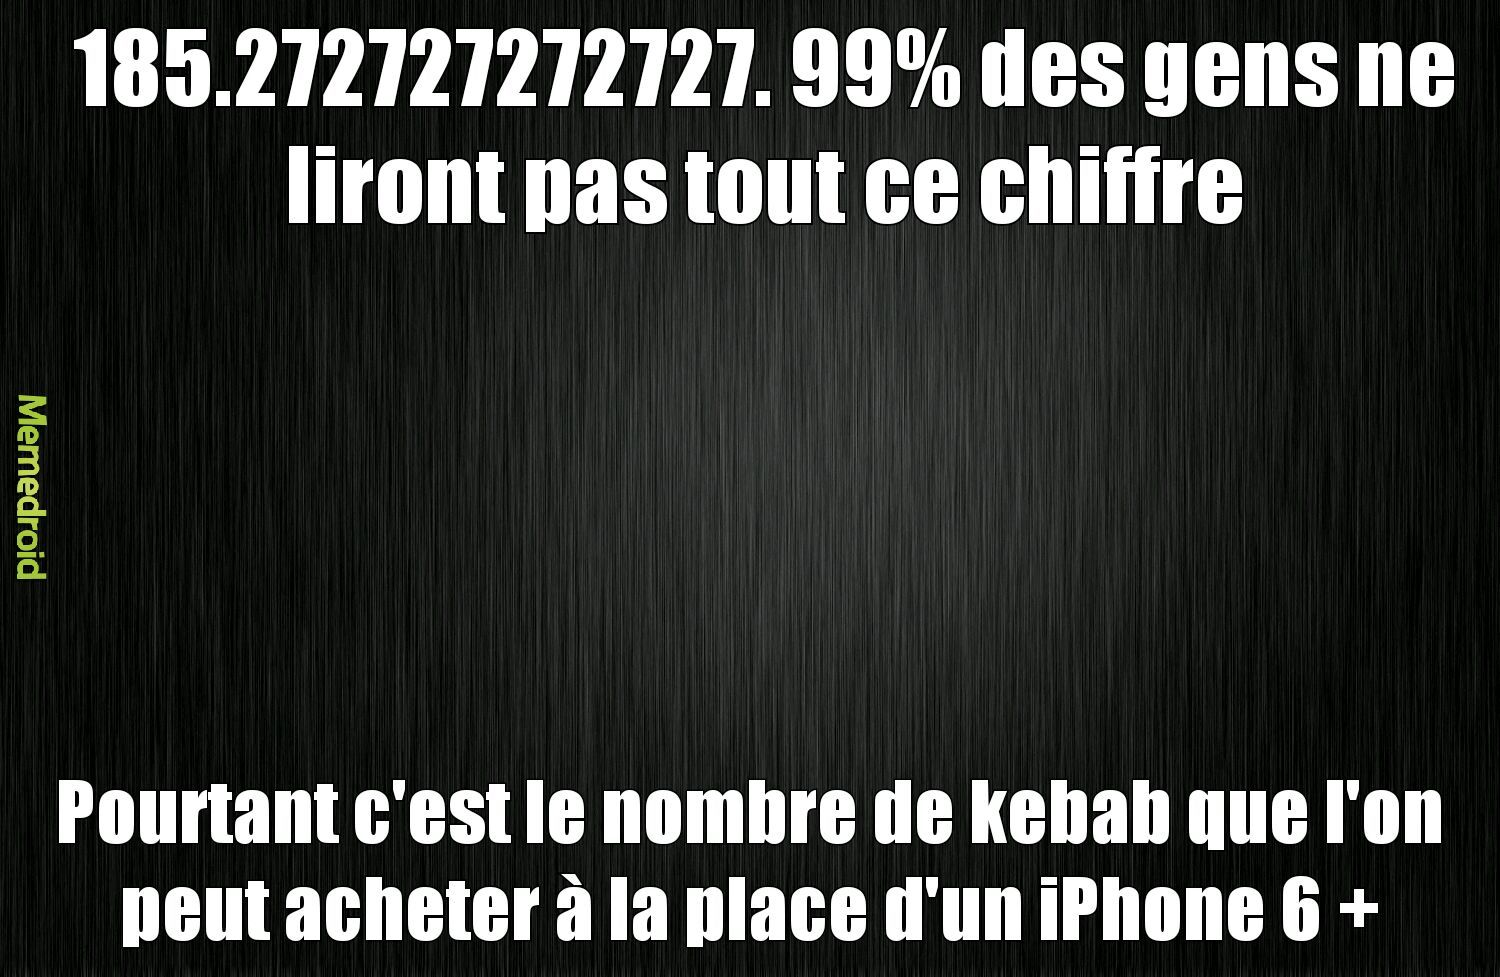 IPhone ou kebab ? - meme